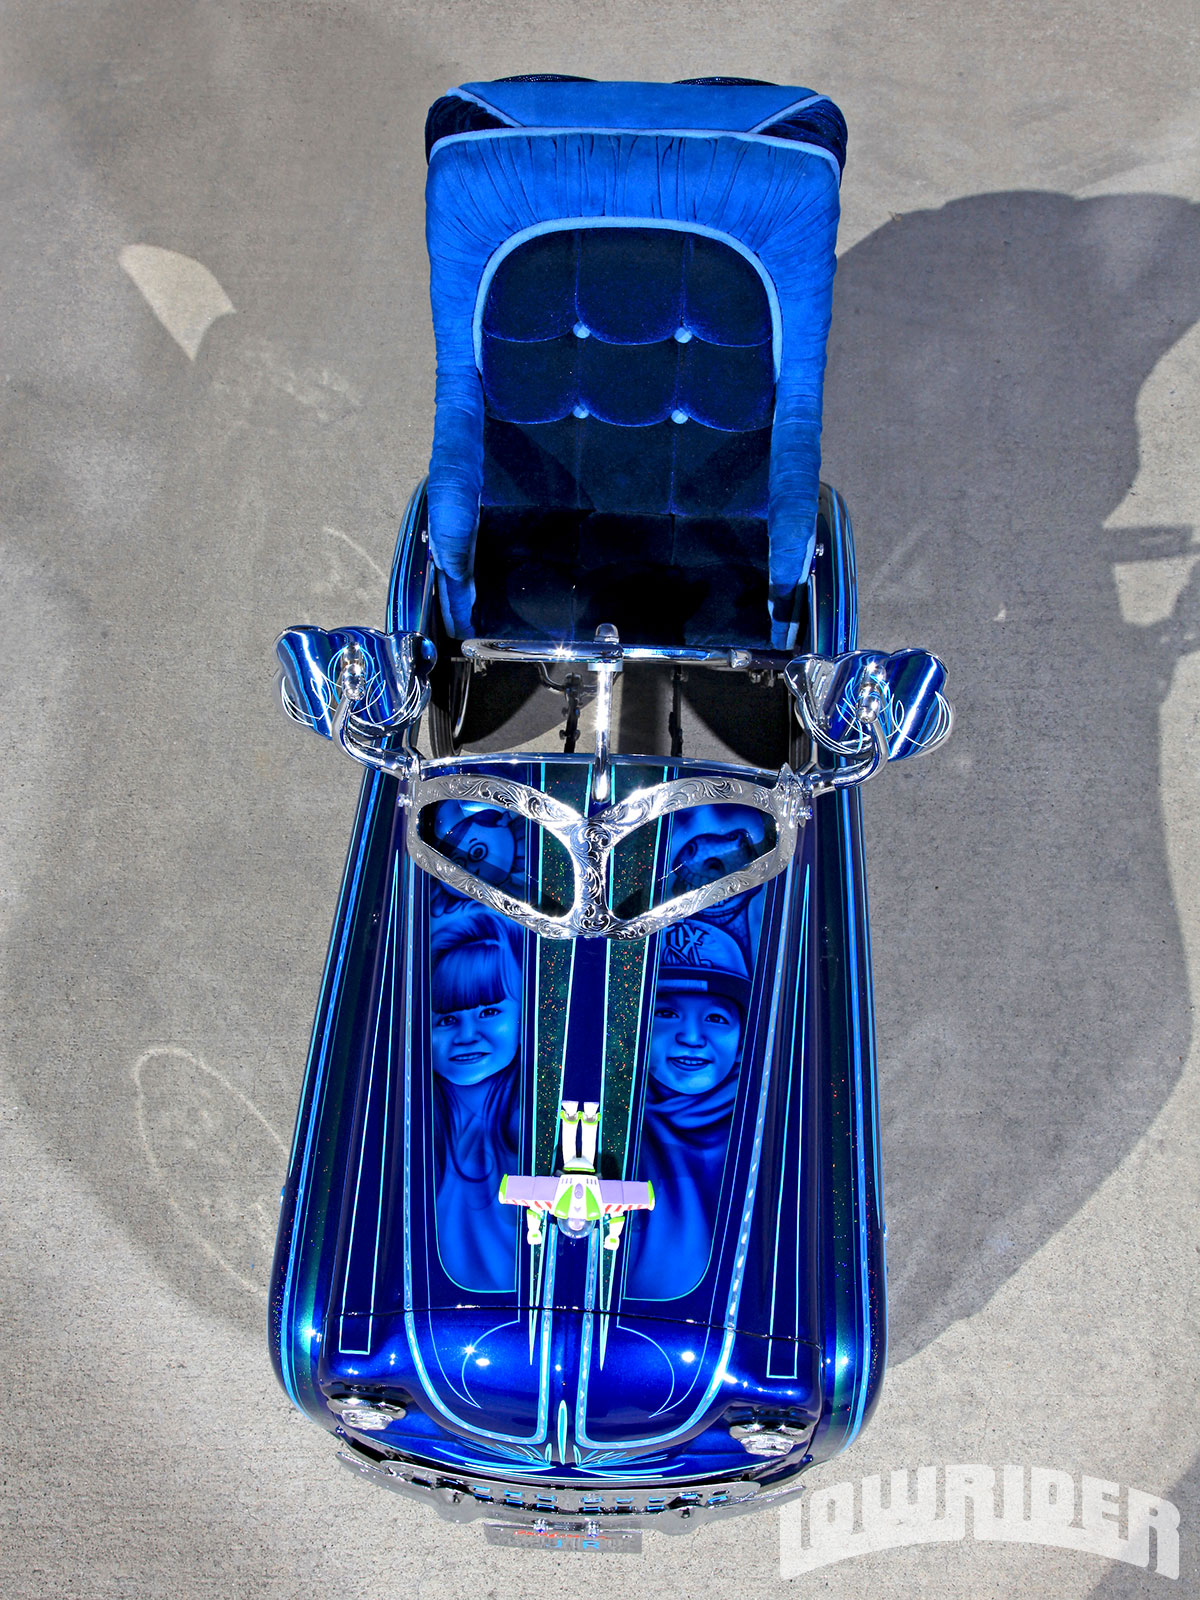 Custom Lowrider Pedal Car Aerial View on Old Pedal Cars Parts